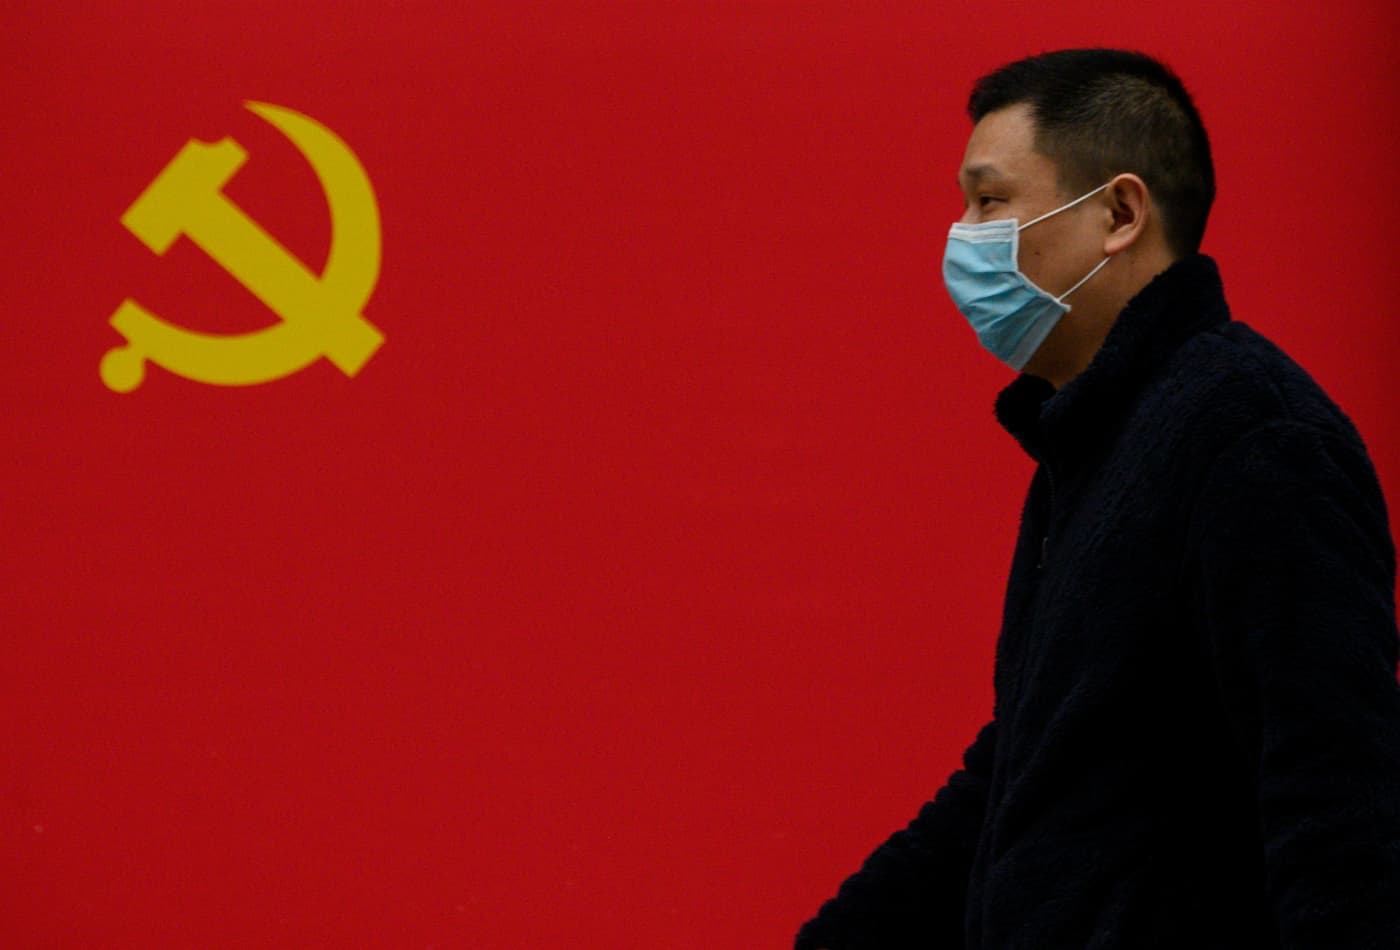 China hid extent of coronavirus outbreak, US intelligence reportedly says